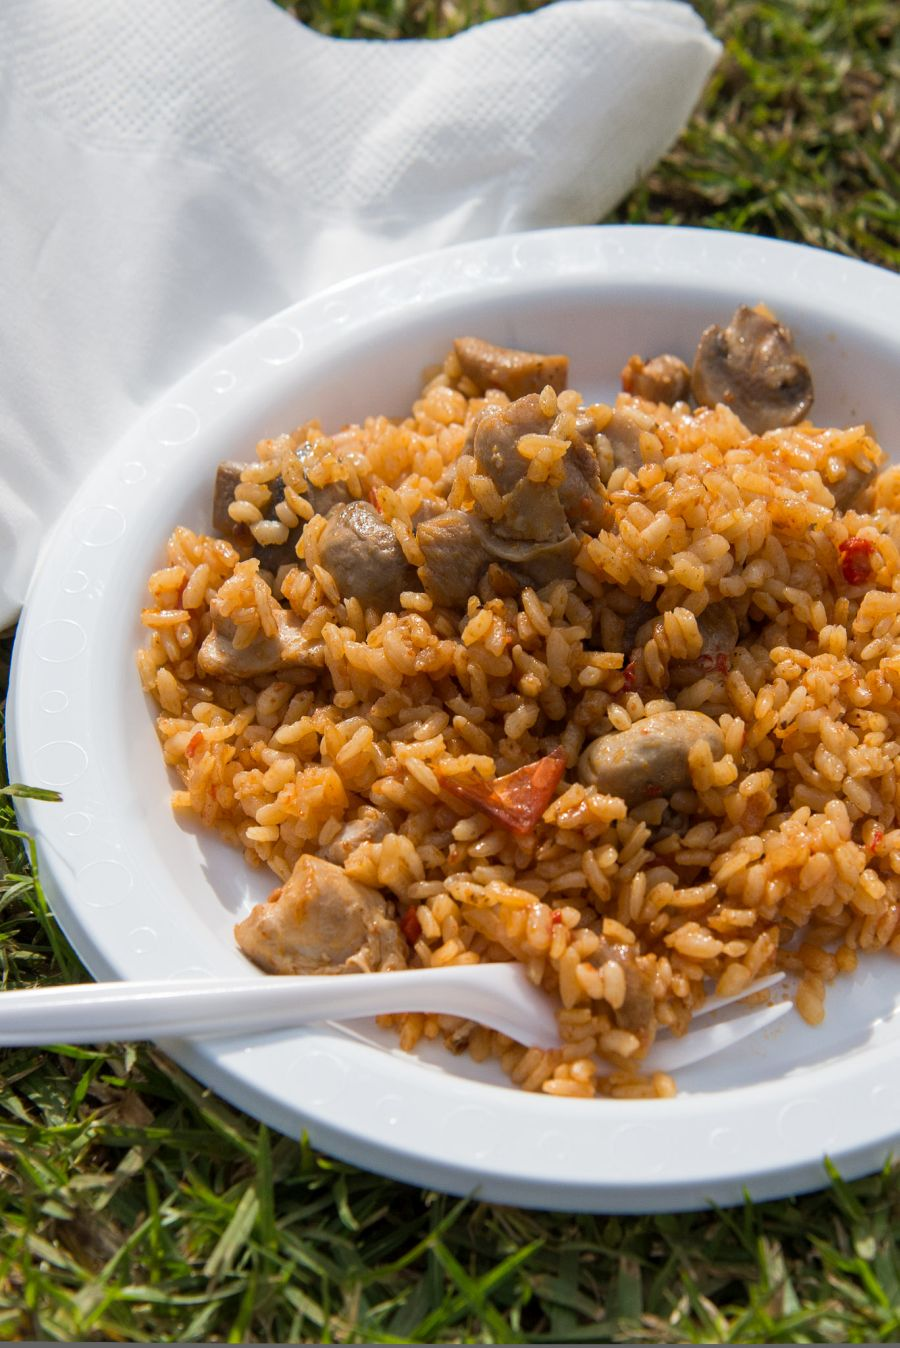 Chicken and mushroom paella with truffle by Xarcuteria